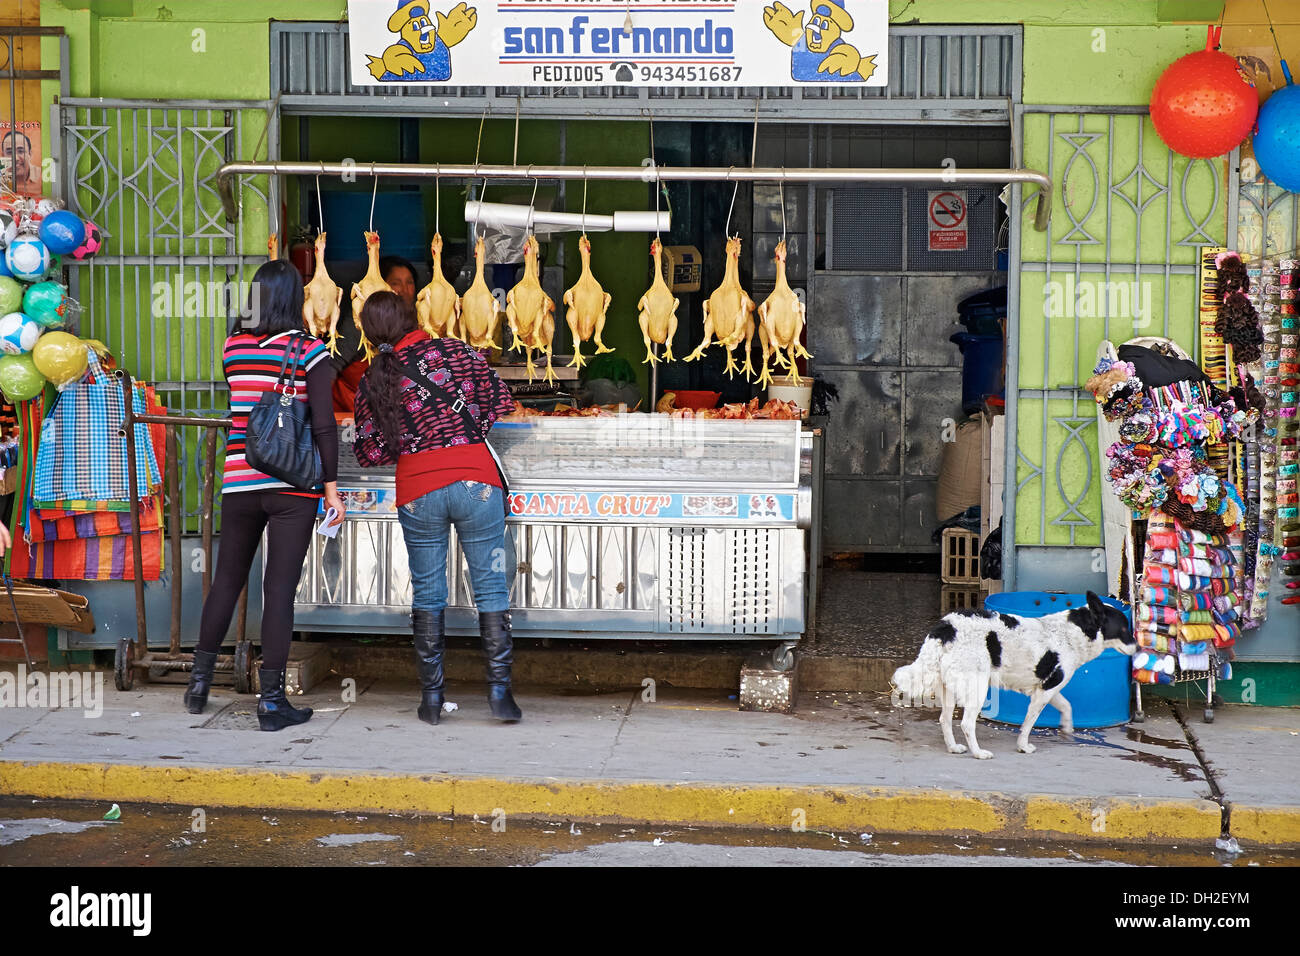 Poultry and meat street trader, Huaraz In Peru, South America. - Stock Image